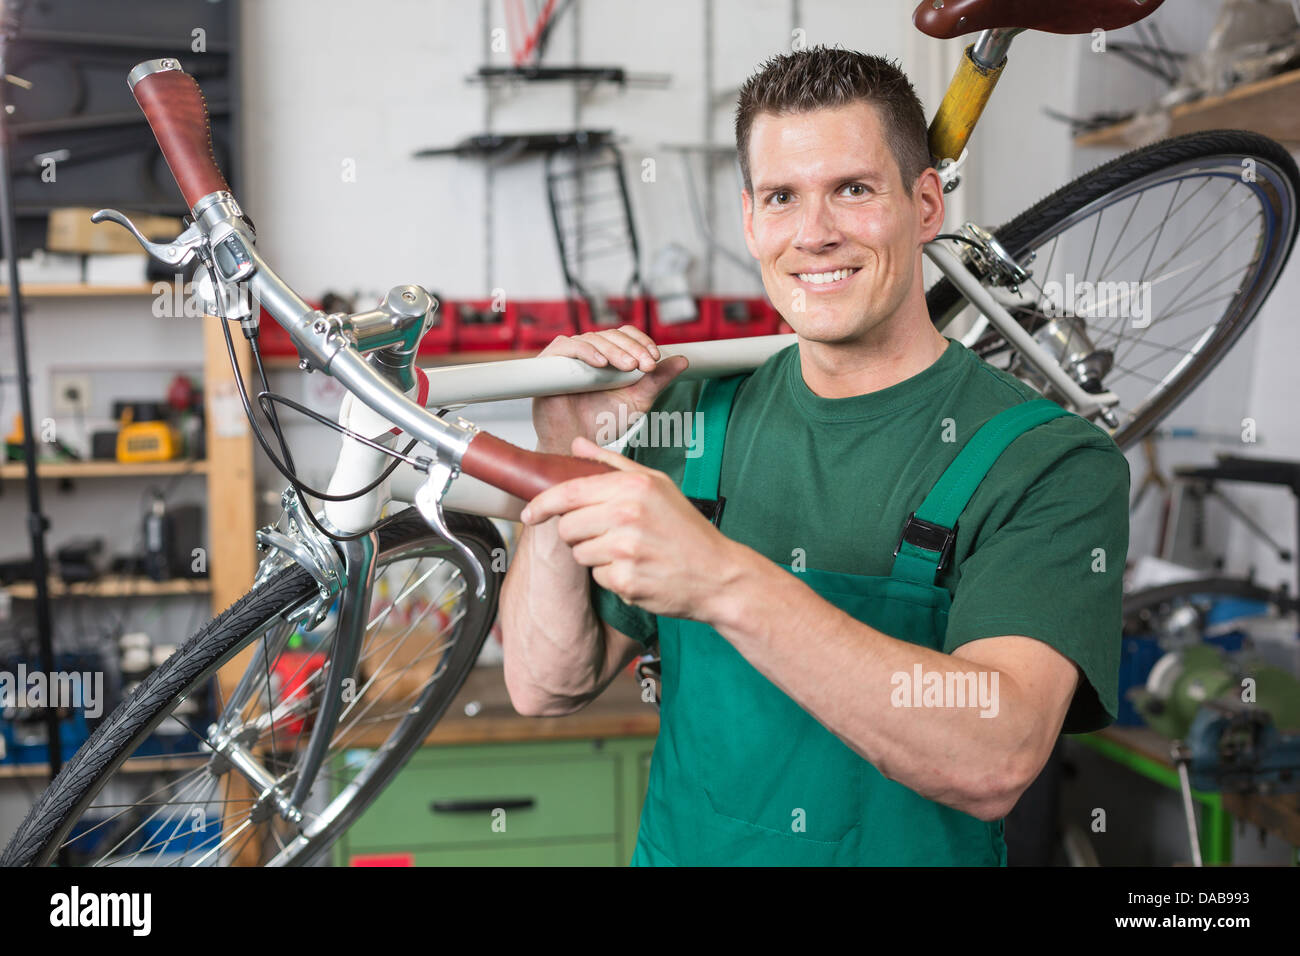 Bicycle mechanic carrying a bike in workshop smiling into the camera - Stock Image